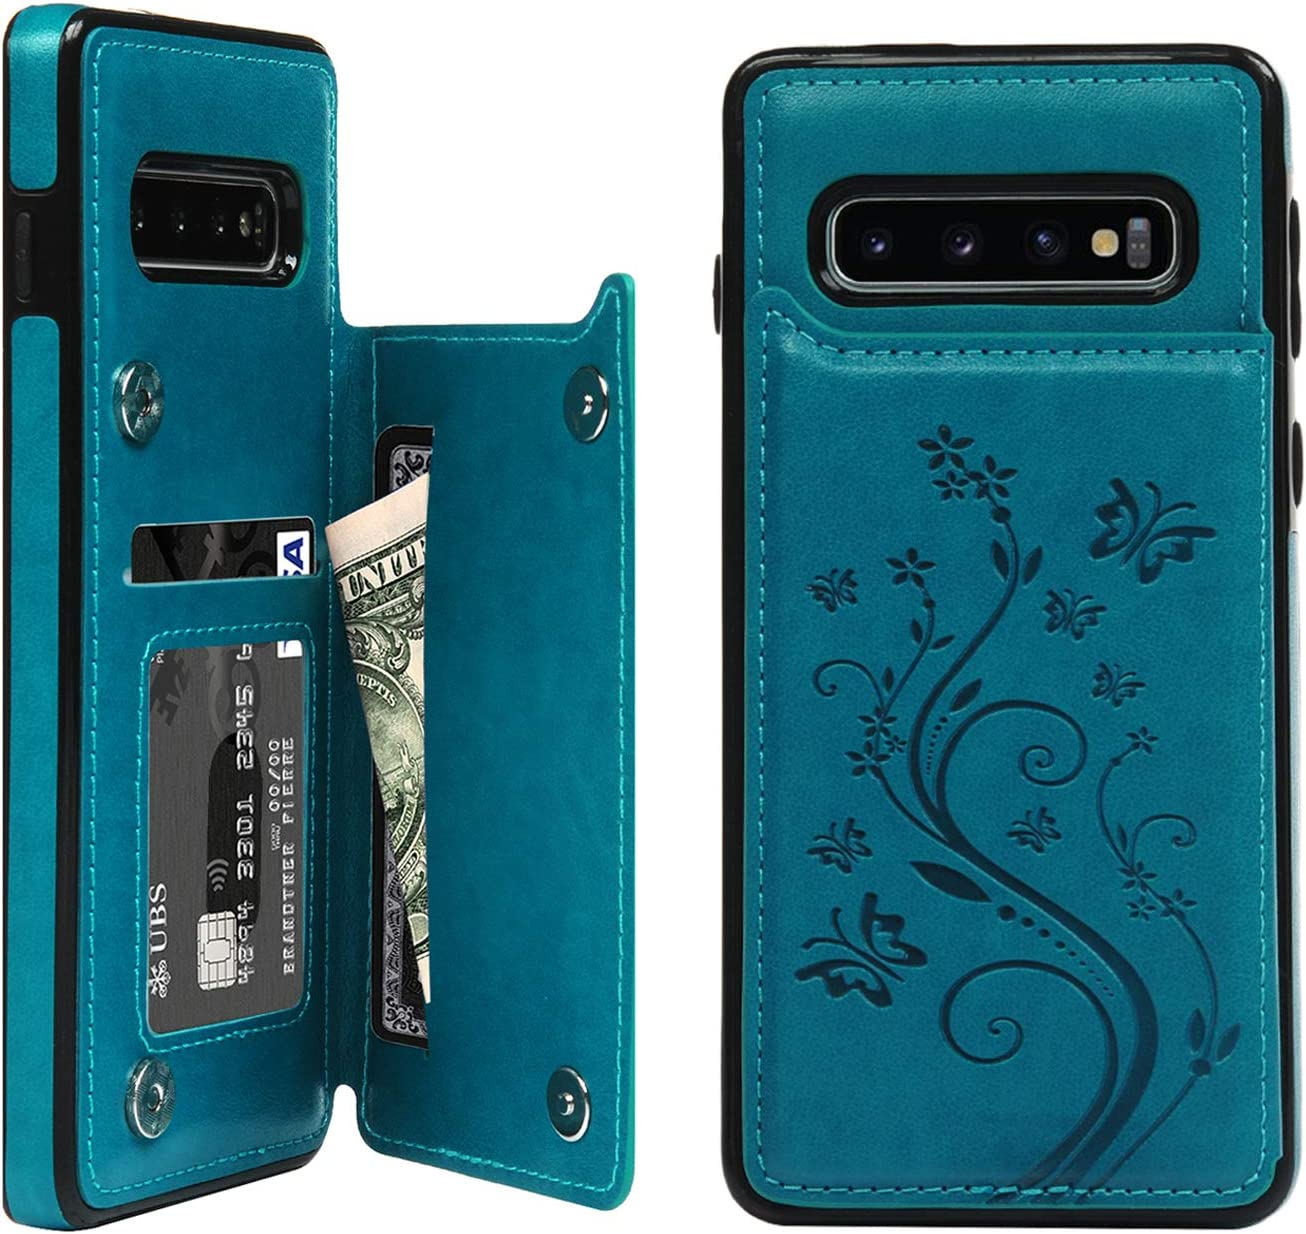 Galaxy S10 Plus Card Holder Case, Galaxy S10 Plus Wallet Case Embossed Butterfly Slim Folio Leather Cover Shockproof Shell with Credit Card Slot Protective Skin for Galaxy S10 Plus, Blue